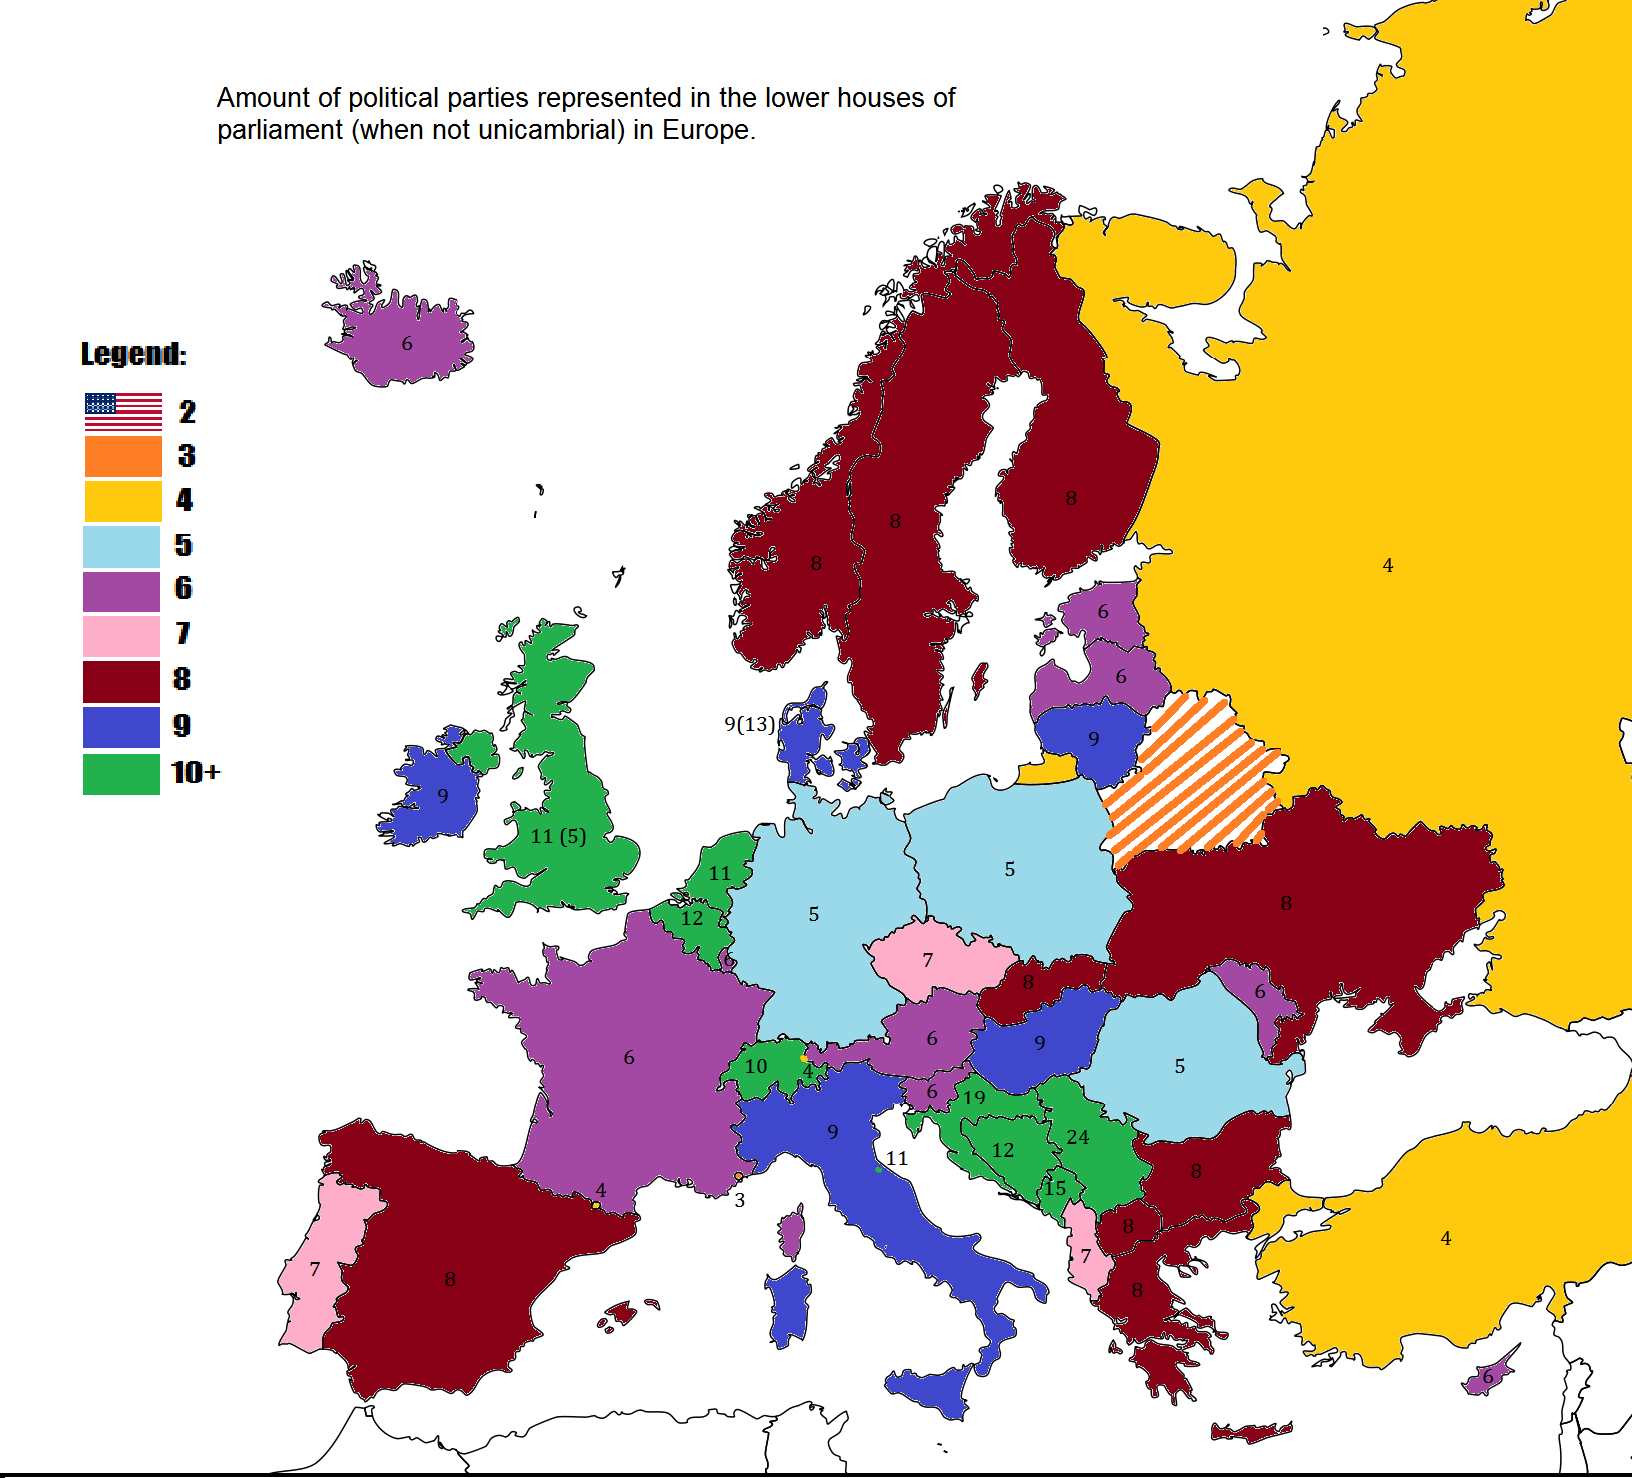 Amount of political parties represented in European parliaments